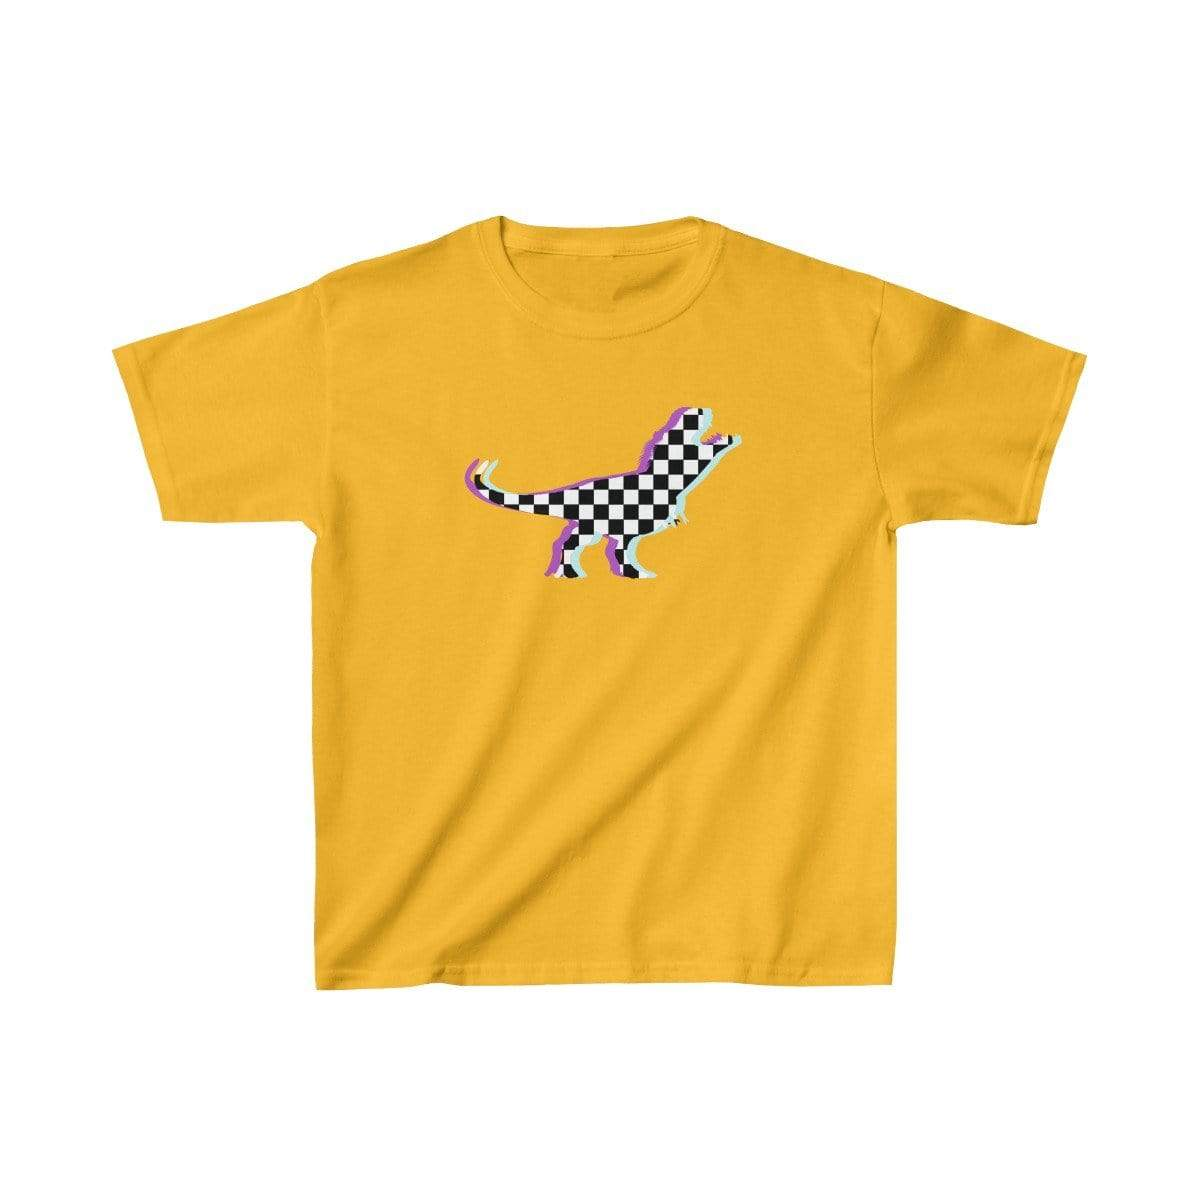 Printify Kids clothes Gold / XS Glitch Aesthetic TRex Checker T-Shirt Kids